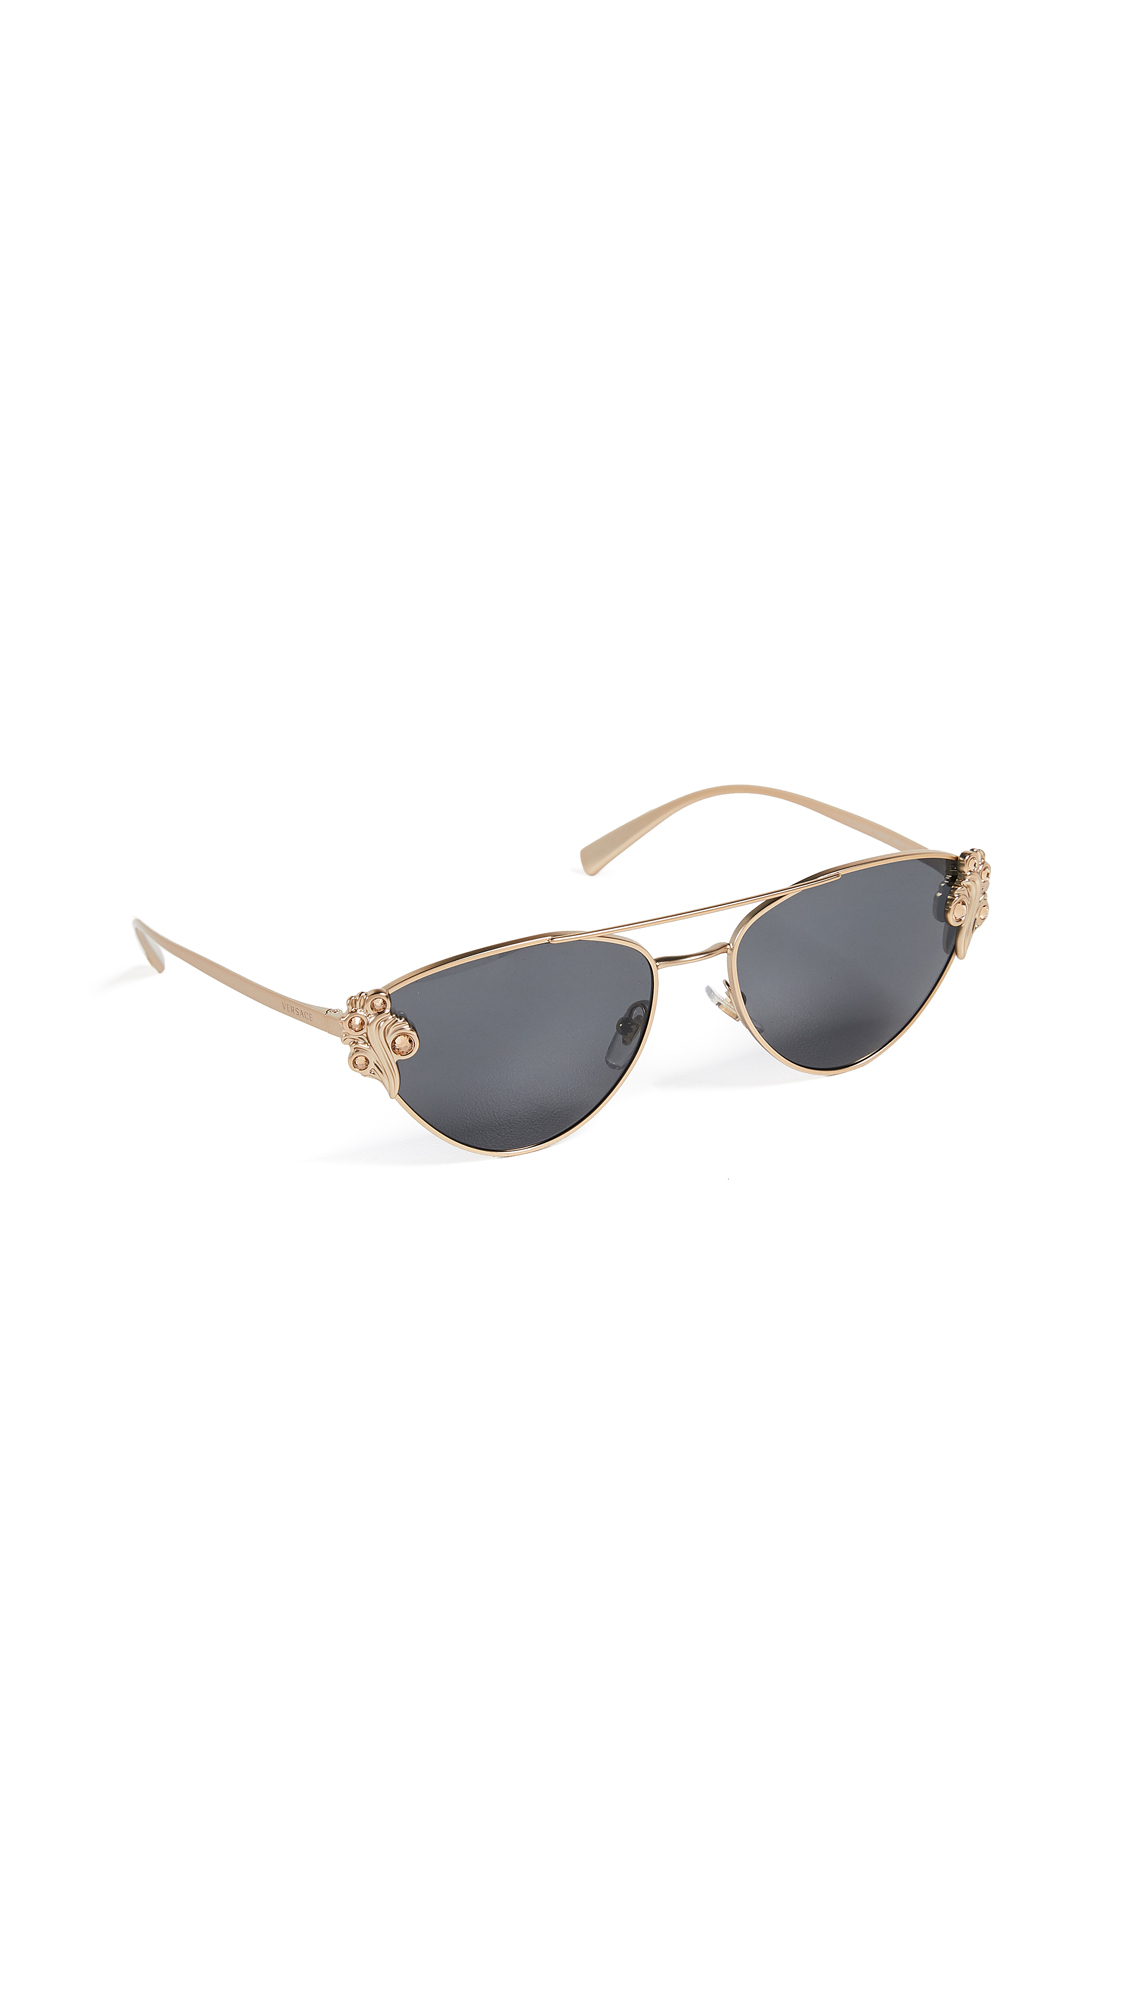 Versace Aviator Sunglasses - Gold/Grey